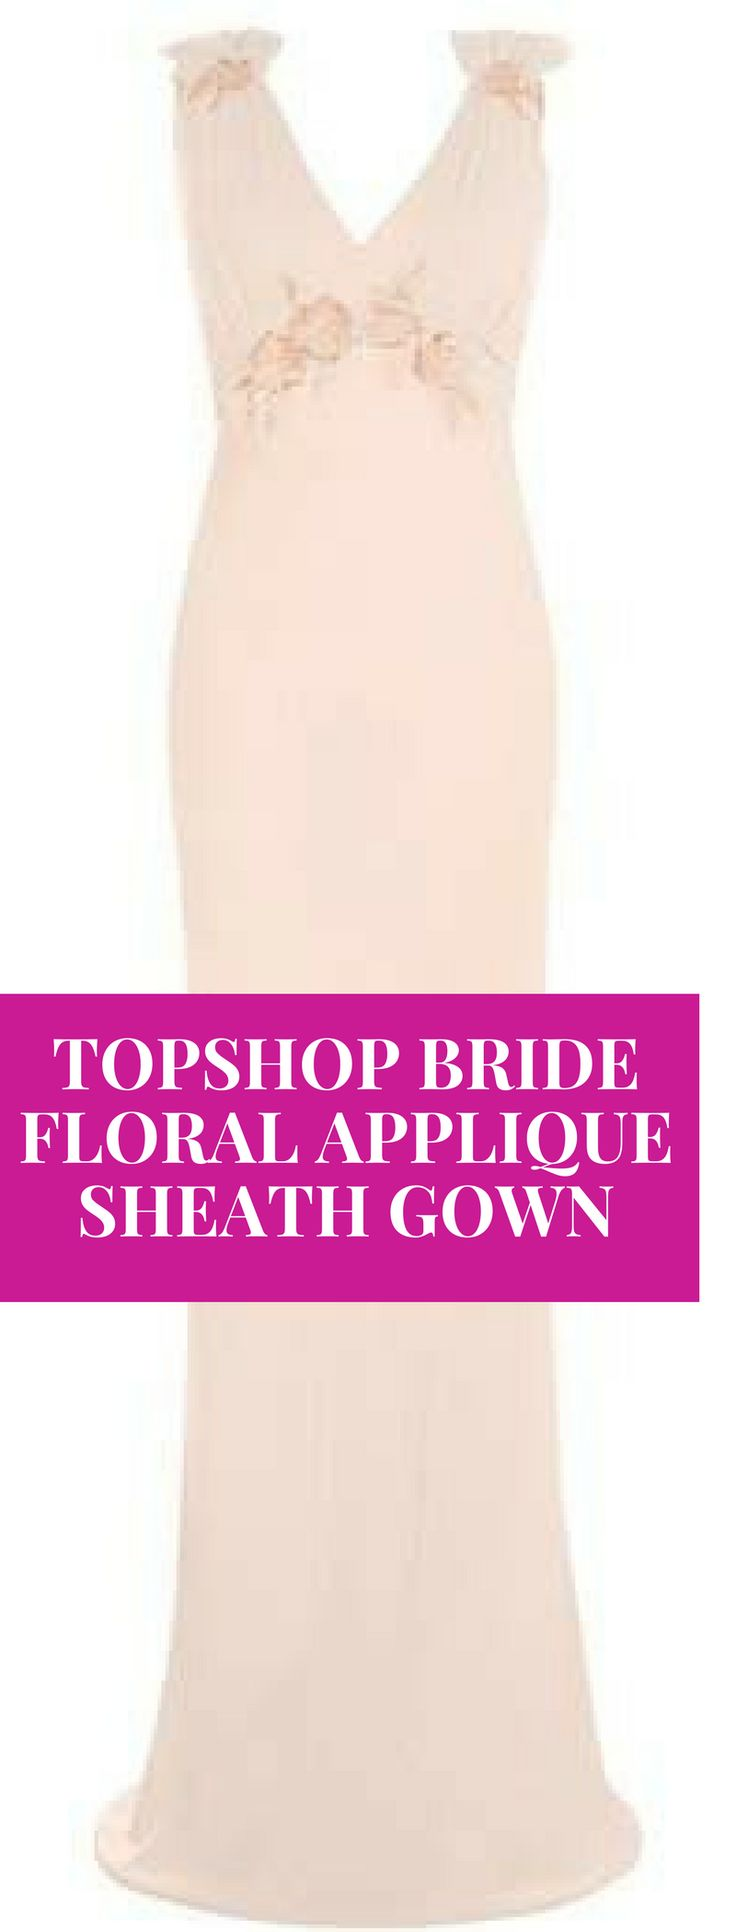 womens summer day dresses Bride Floral Appliqué Sheath Gown | Made from a luscious mix of satin and georgette, this curve-skimming sheath highlights your shoulders and waistline with romantic floral appliqués. #bride  #dresses